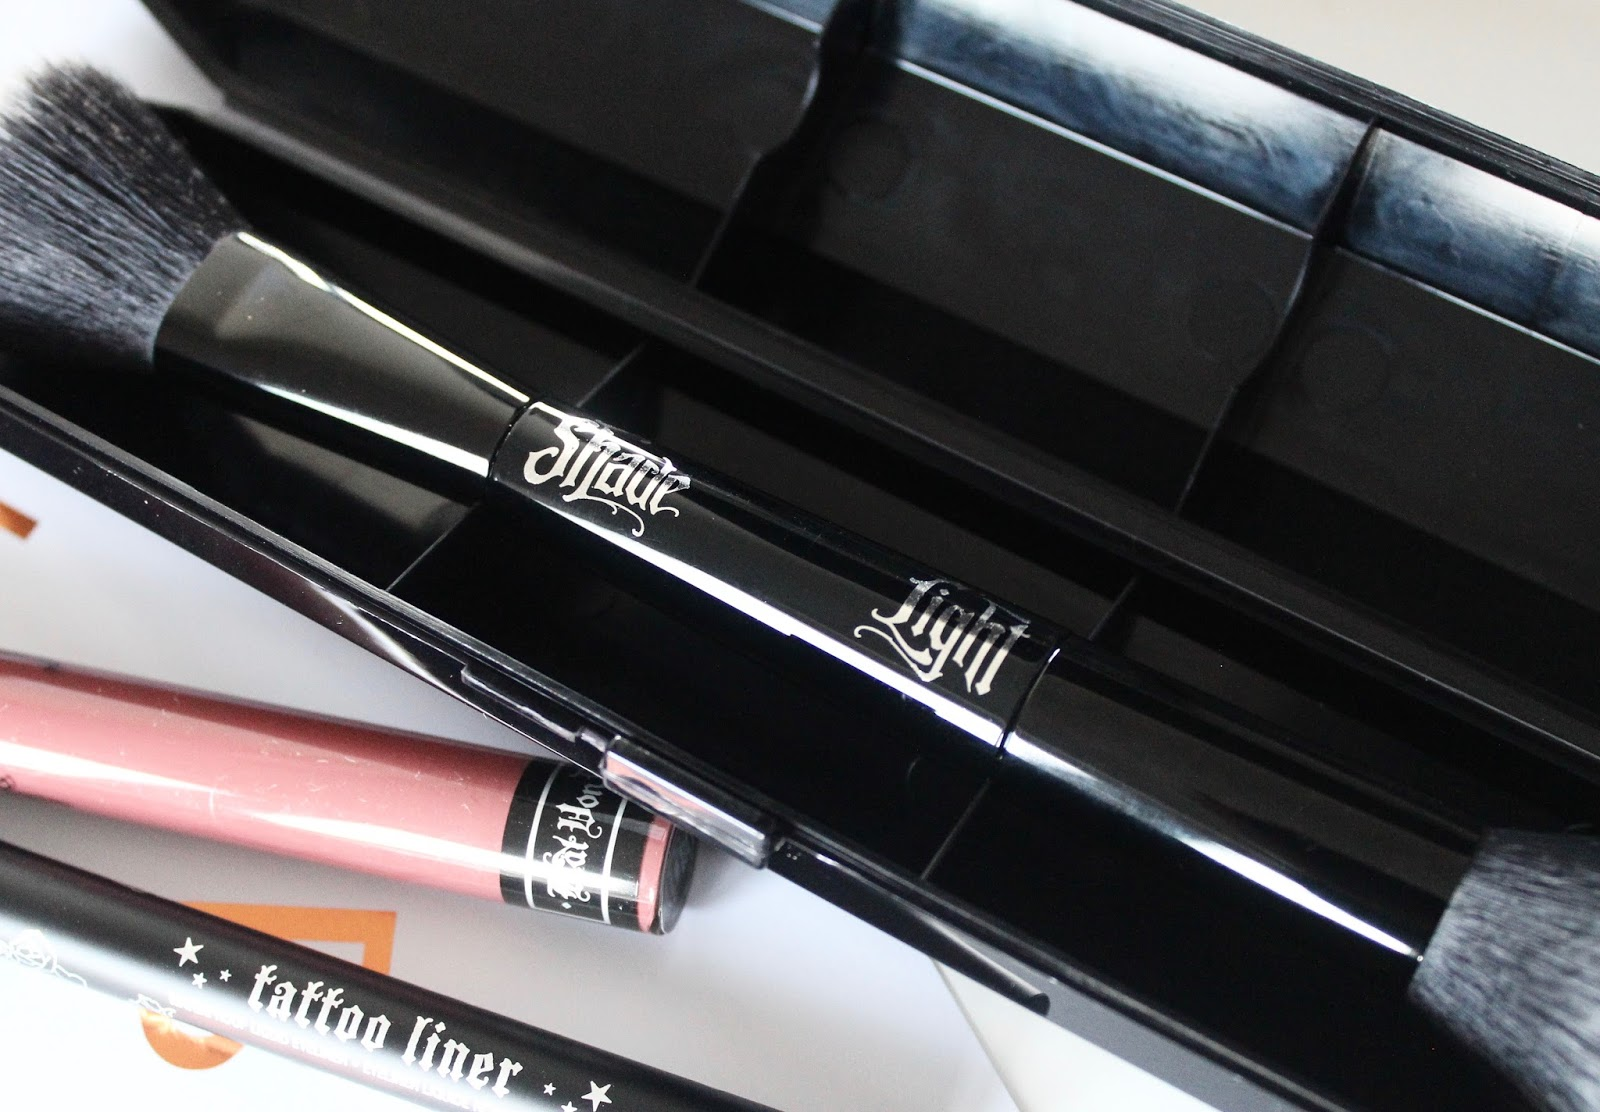 Kat Von D Iconic Beauty Products